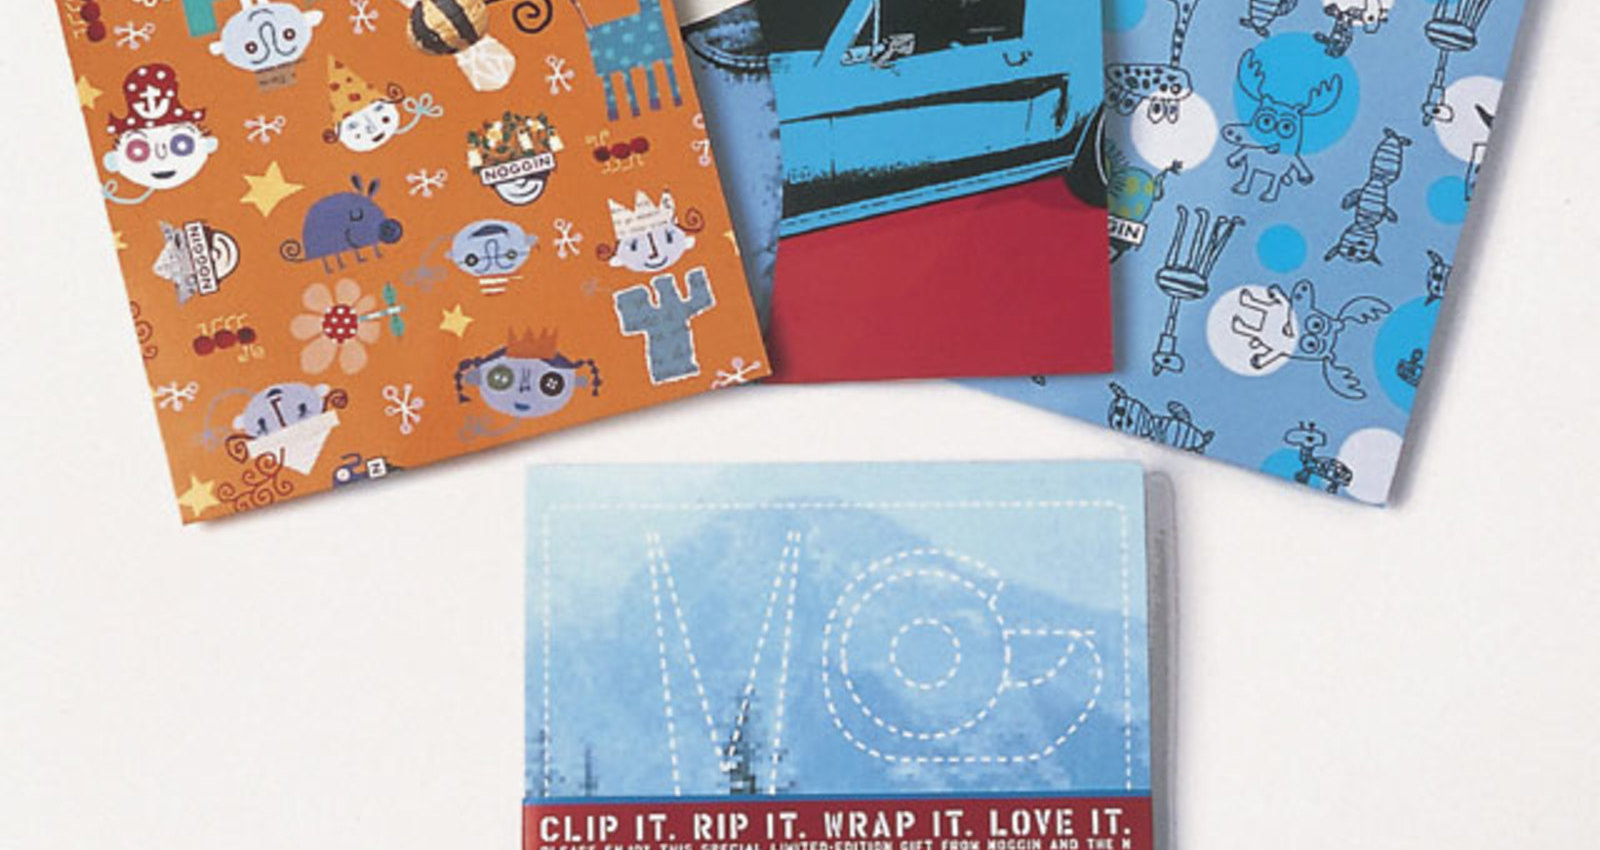 Noggin / The N Wrapping Paper